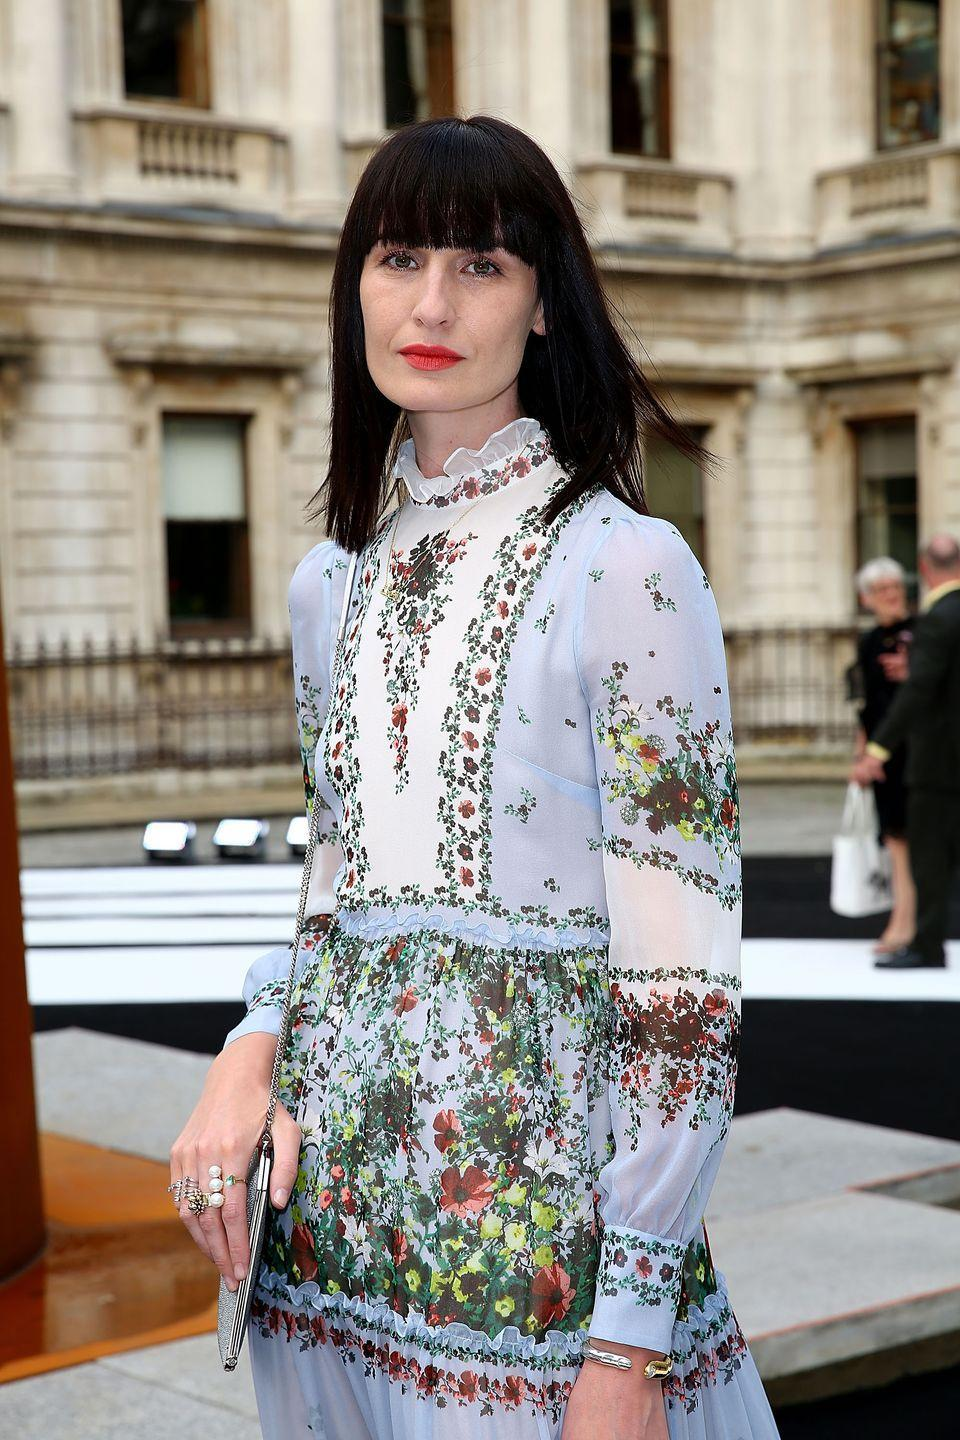 <p>Erin O'Connor's sharp, angled features could have made this blunt hair cut and fringe look too harsh, but as with most things the supermodel does, she pulls it off with panache. </p>